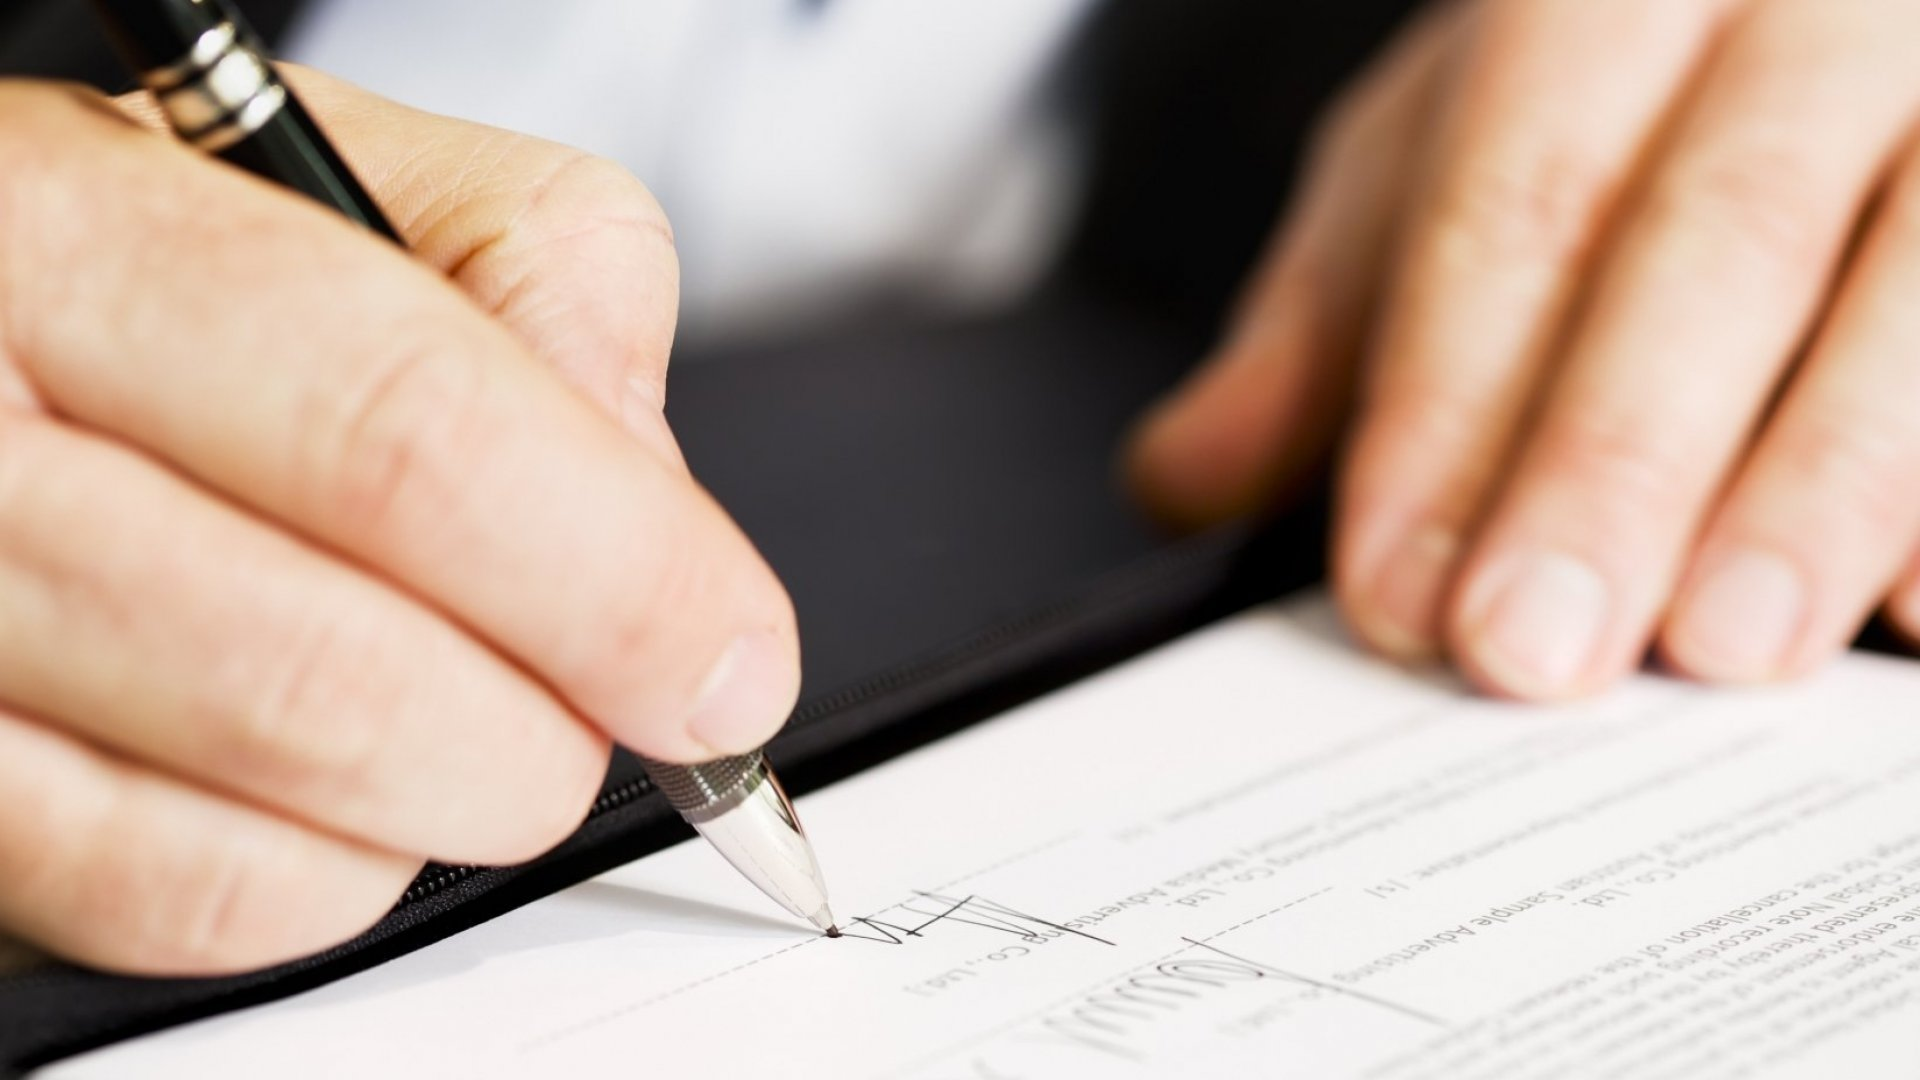 4 Things You Need to Know Before Asking a New Employee to Sign a Nondisclosure Agreement